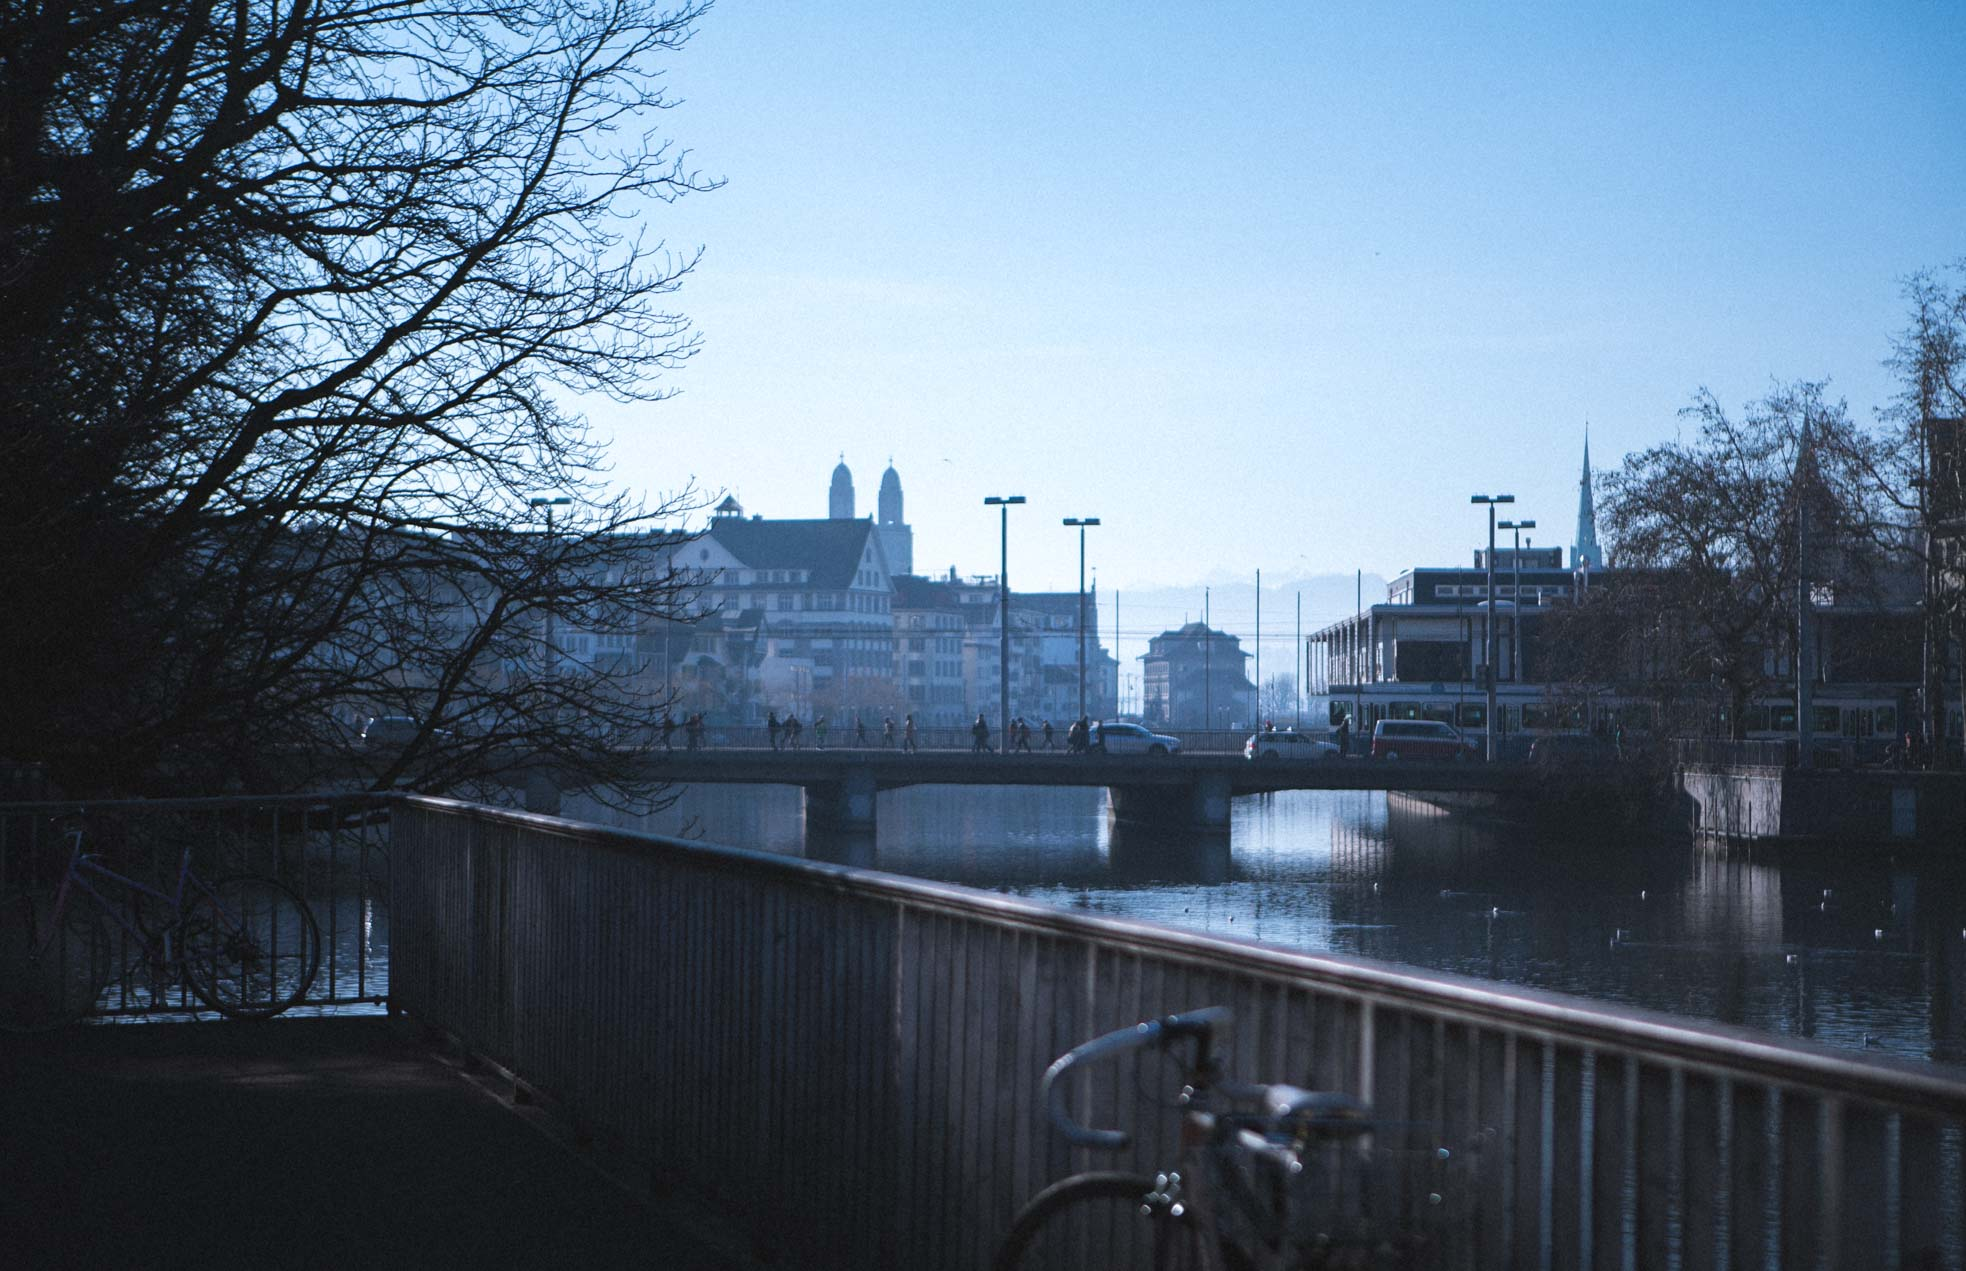 Photo by Pascal Sommer - The river Limmat